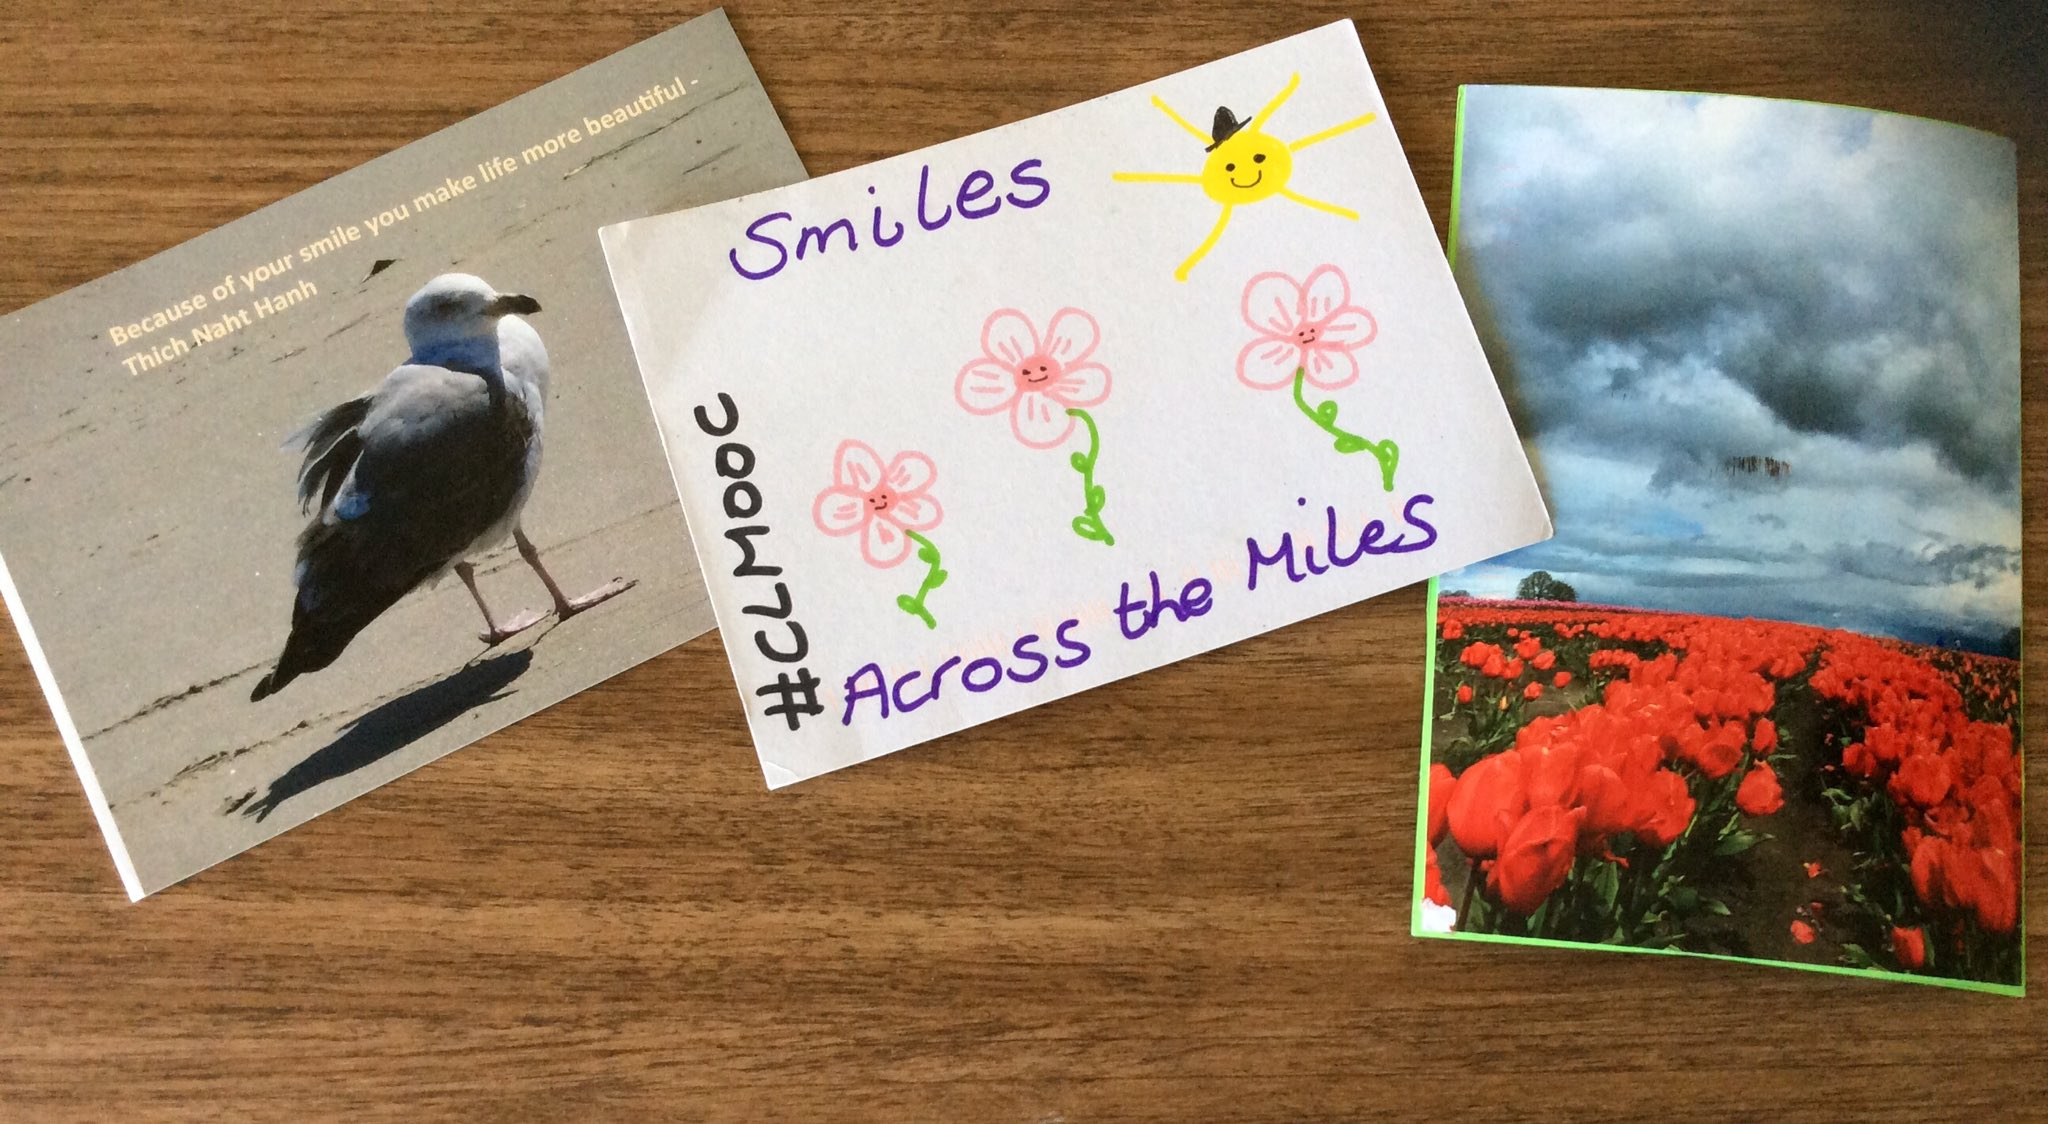 Thanks and Aloha @susanvg @NomadWarMachine and @klbz for the #clmooc Saturday smiles! Love your postcards! #clmooc friends are the best! :) https://t.co/e2KATe5CdN